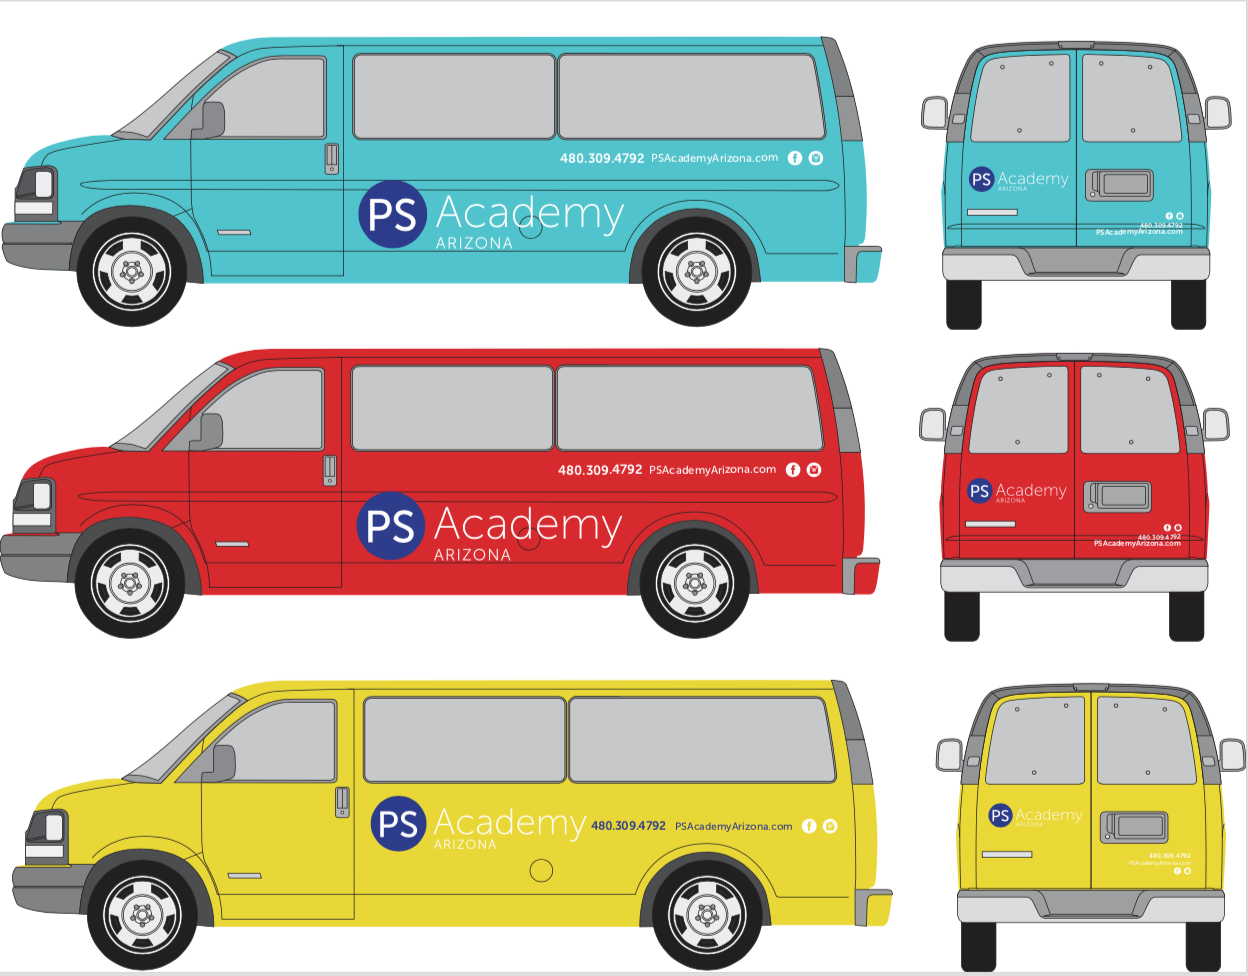 A few renderings of the vehicles you'll see picking students up!